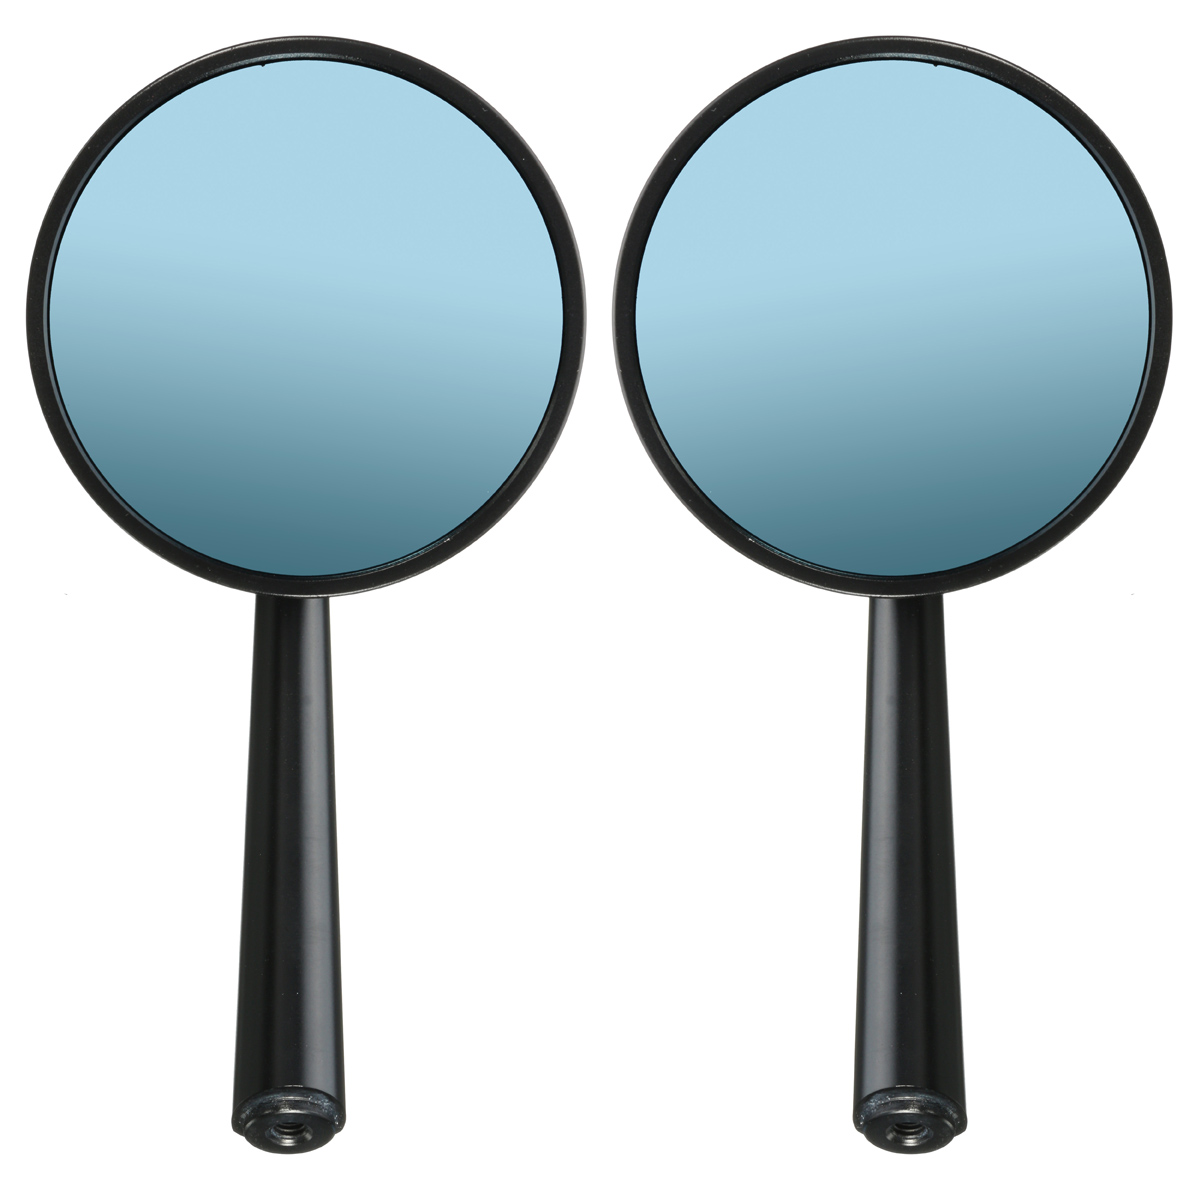 CNC Aluminum Round Motorcycle Rear View Mirror For Cruiser Chopper 8mm 10mm